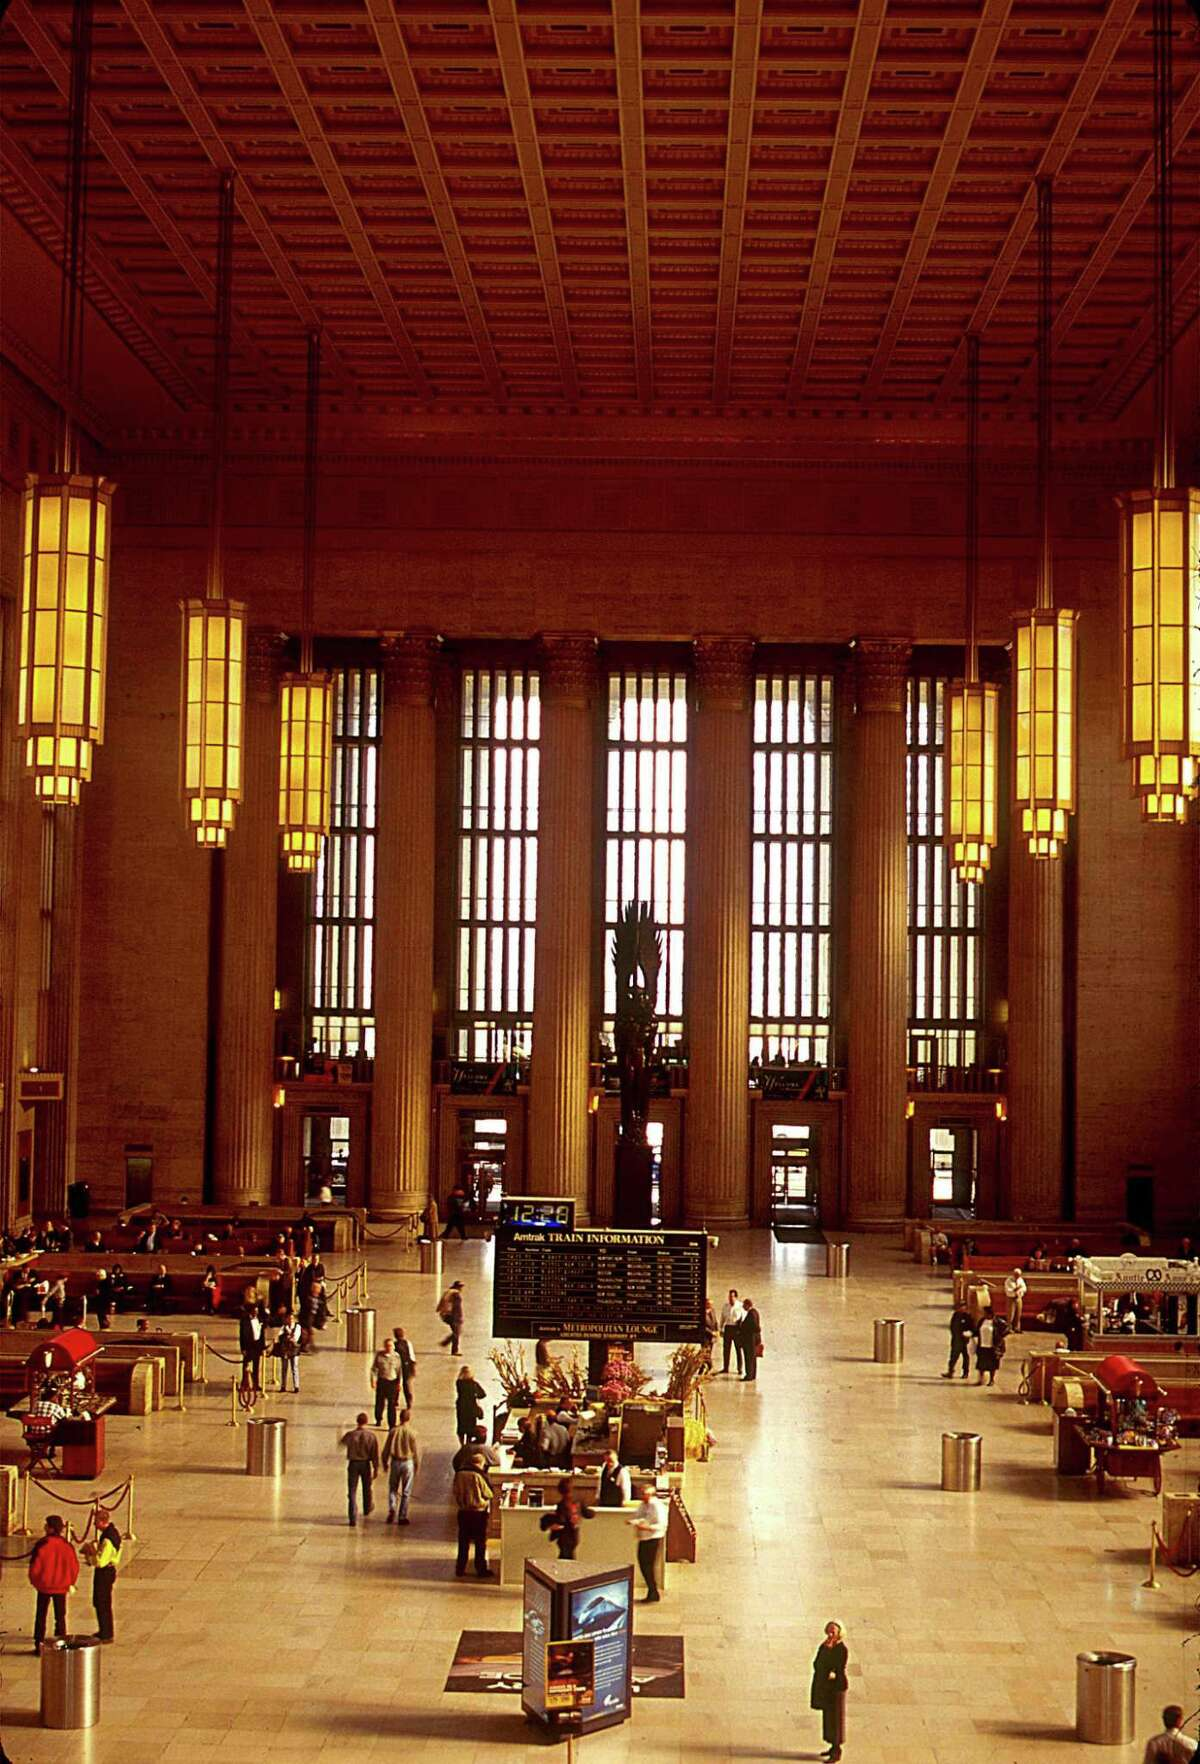 The 30th Street Station in Philadelphia is the United States' second most active railway station. Located on Market Street, the station is on the National Register of Historic Places.